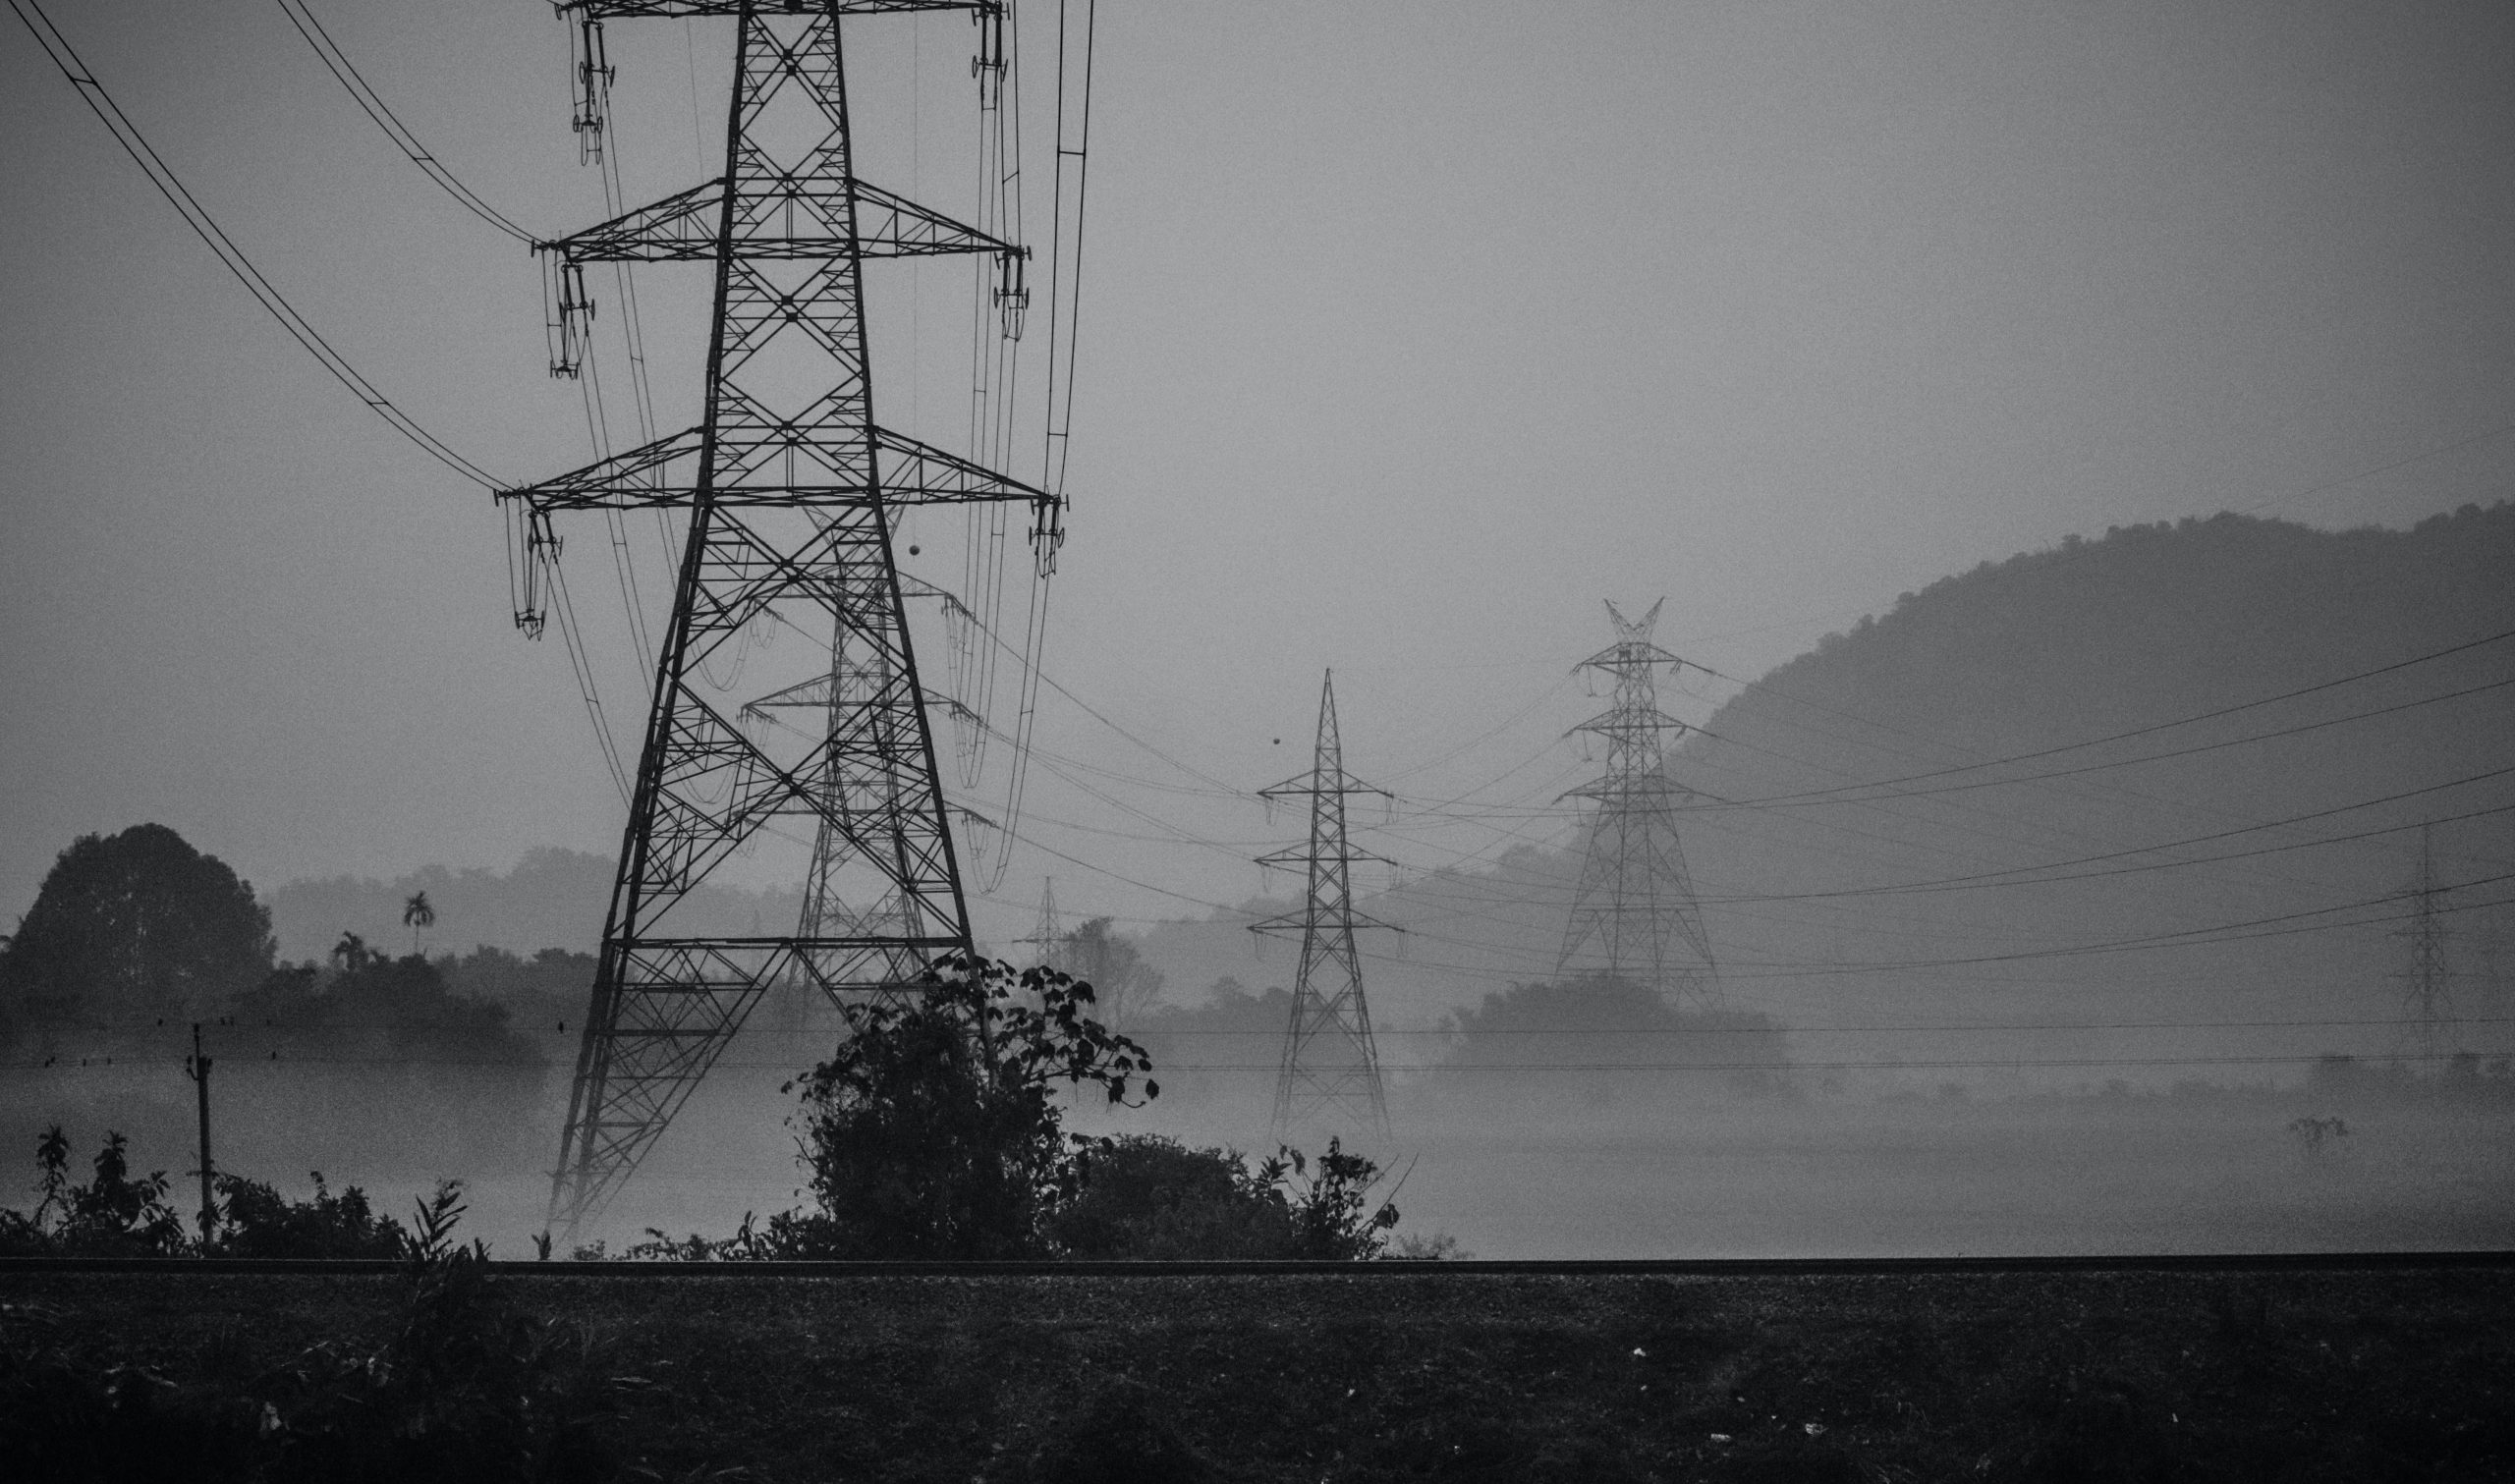 Kakrapar: Why Nuclear Power for Electricity Generation?